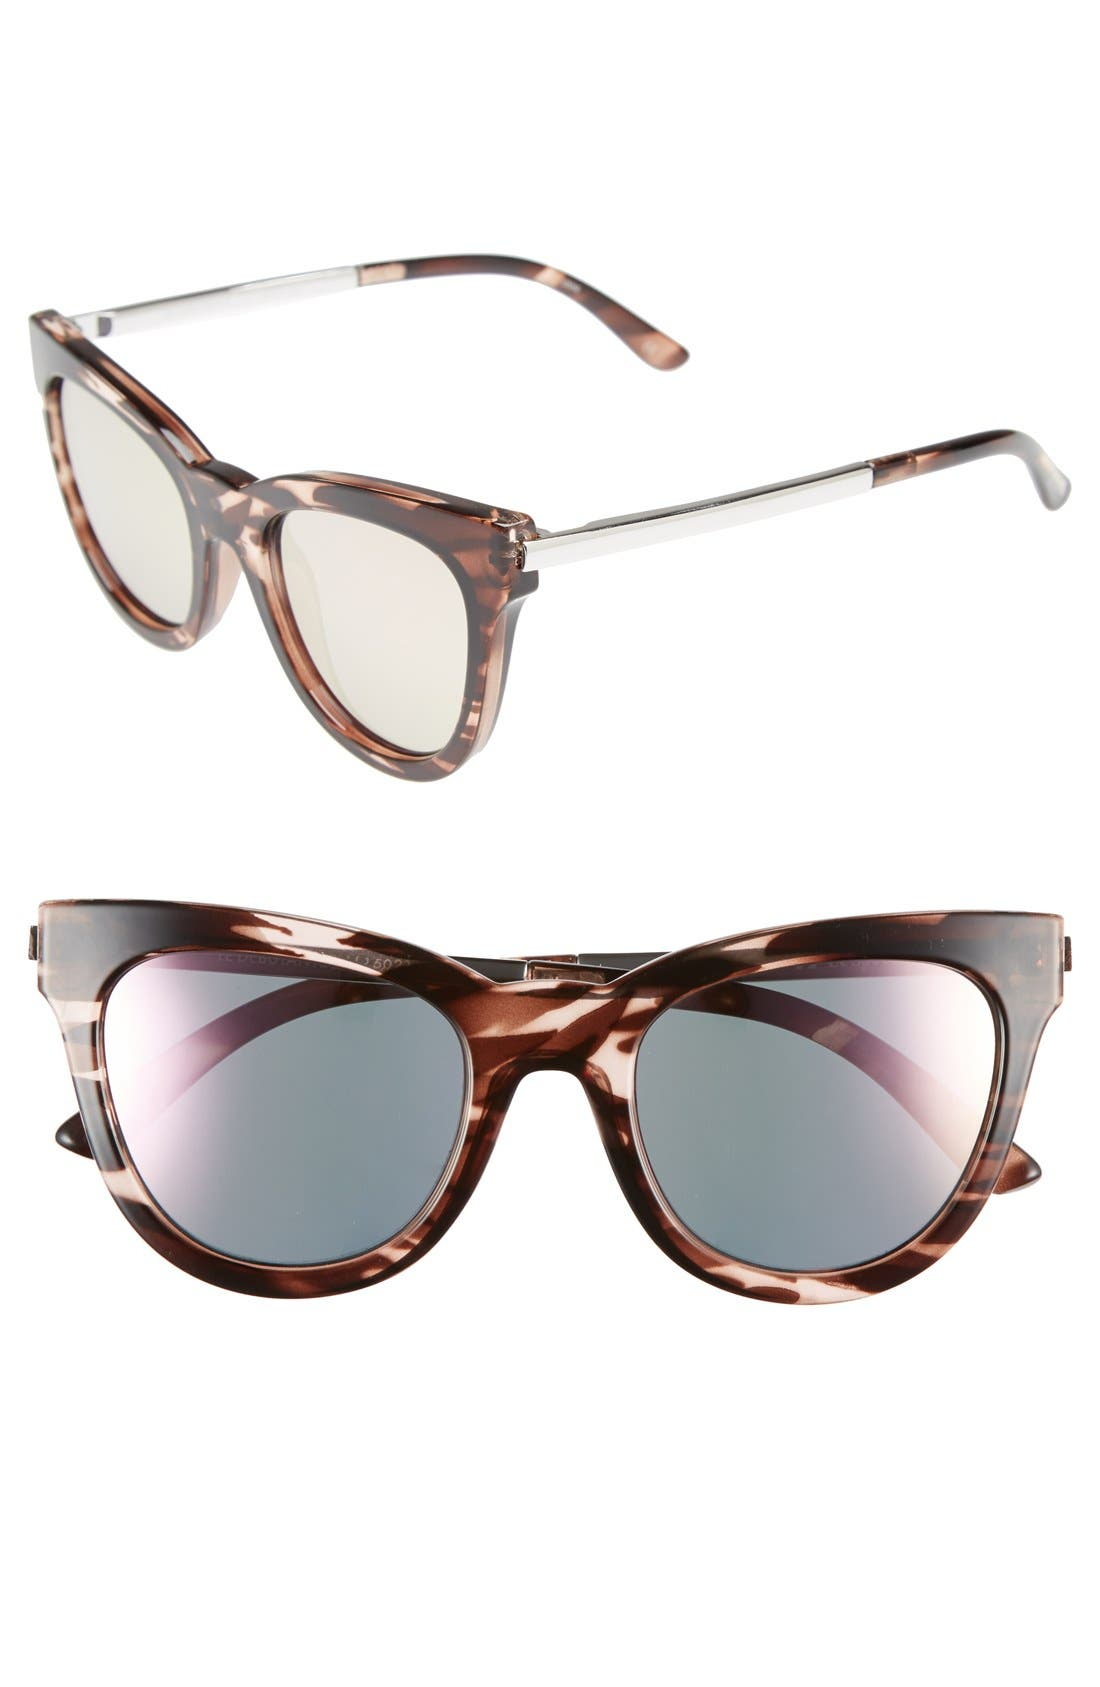 Main Image - Le Specs 'Le Debutante' 51mm Cat Eye Sunglasses